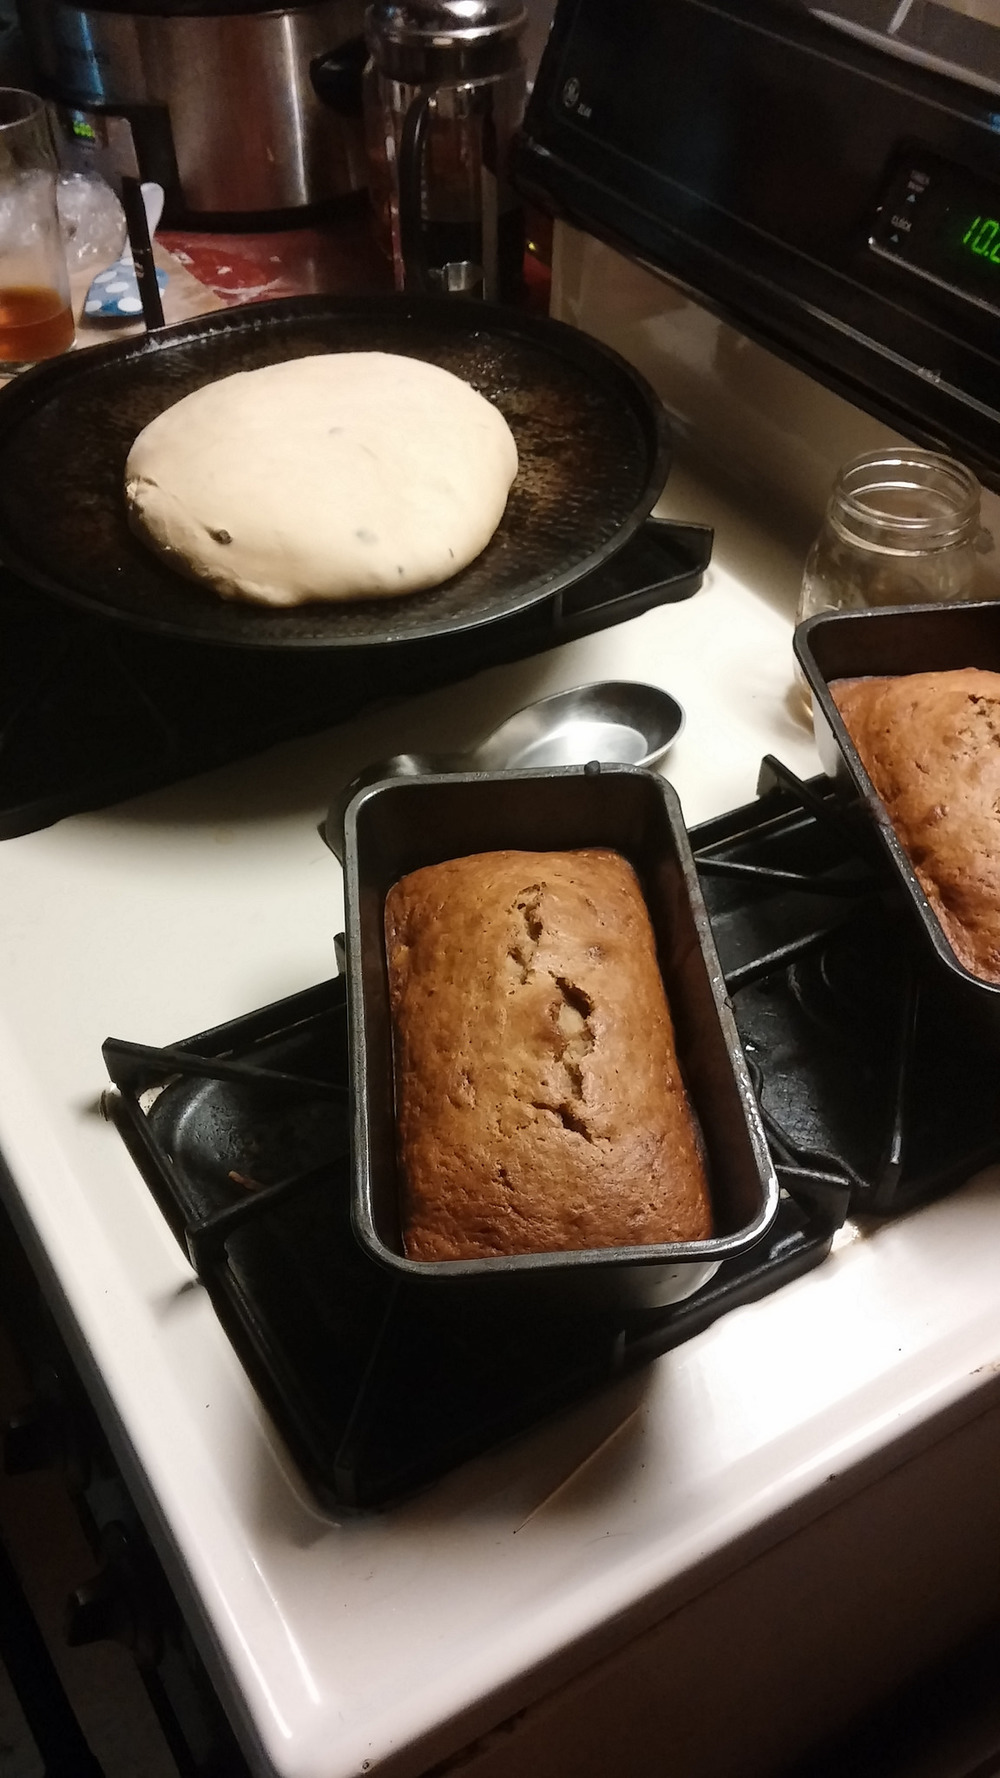 Late night baking leads to mindless eating. Always.